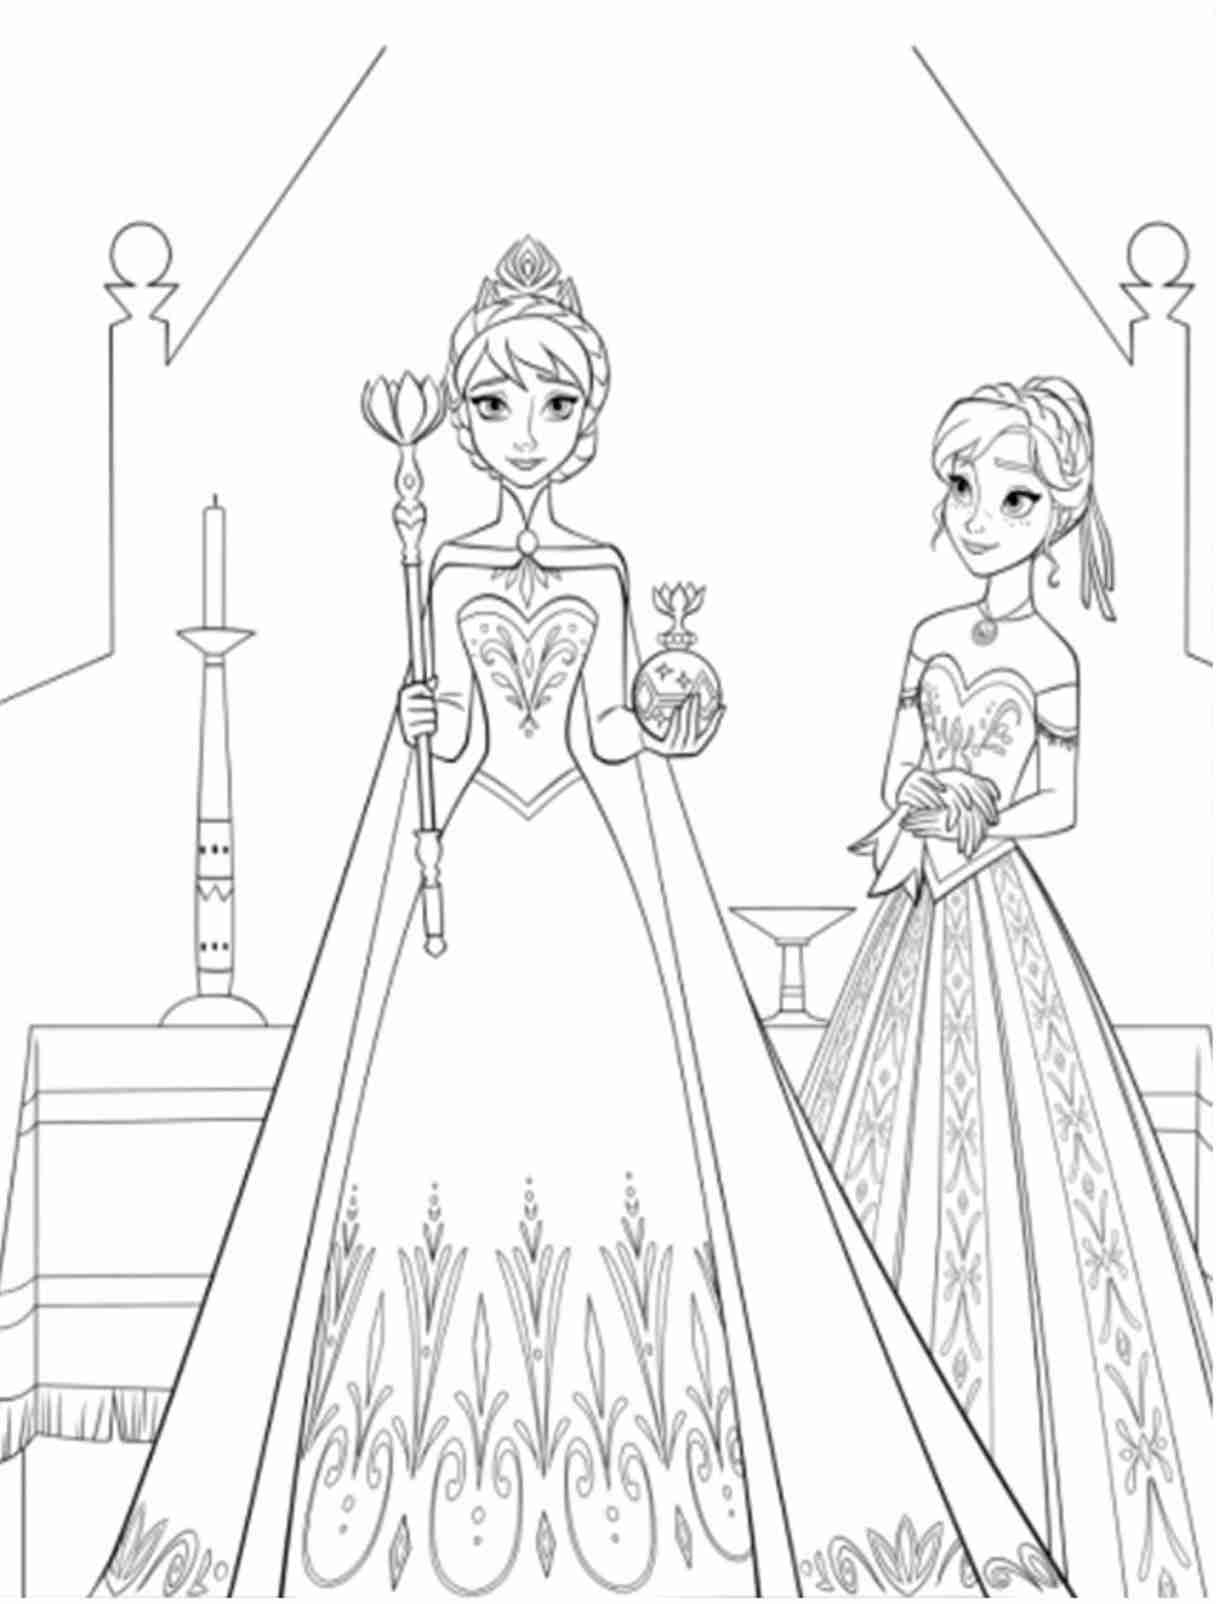 coloring sheets elsa and anna princess elsa and anna coloring pages at getcoloringscom anna and coloring elsa sheets